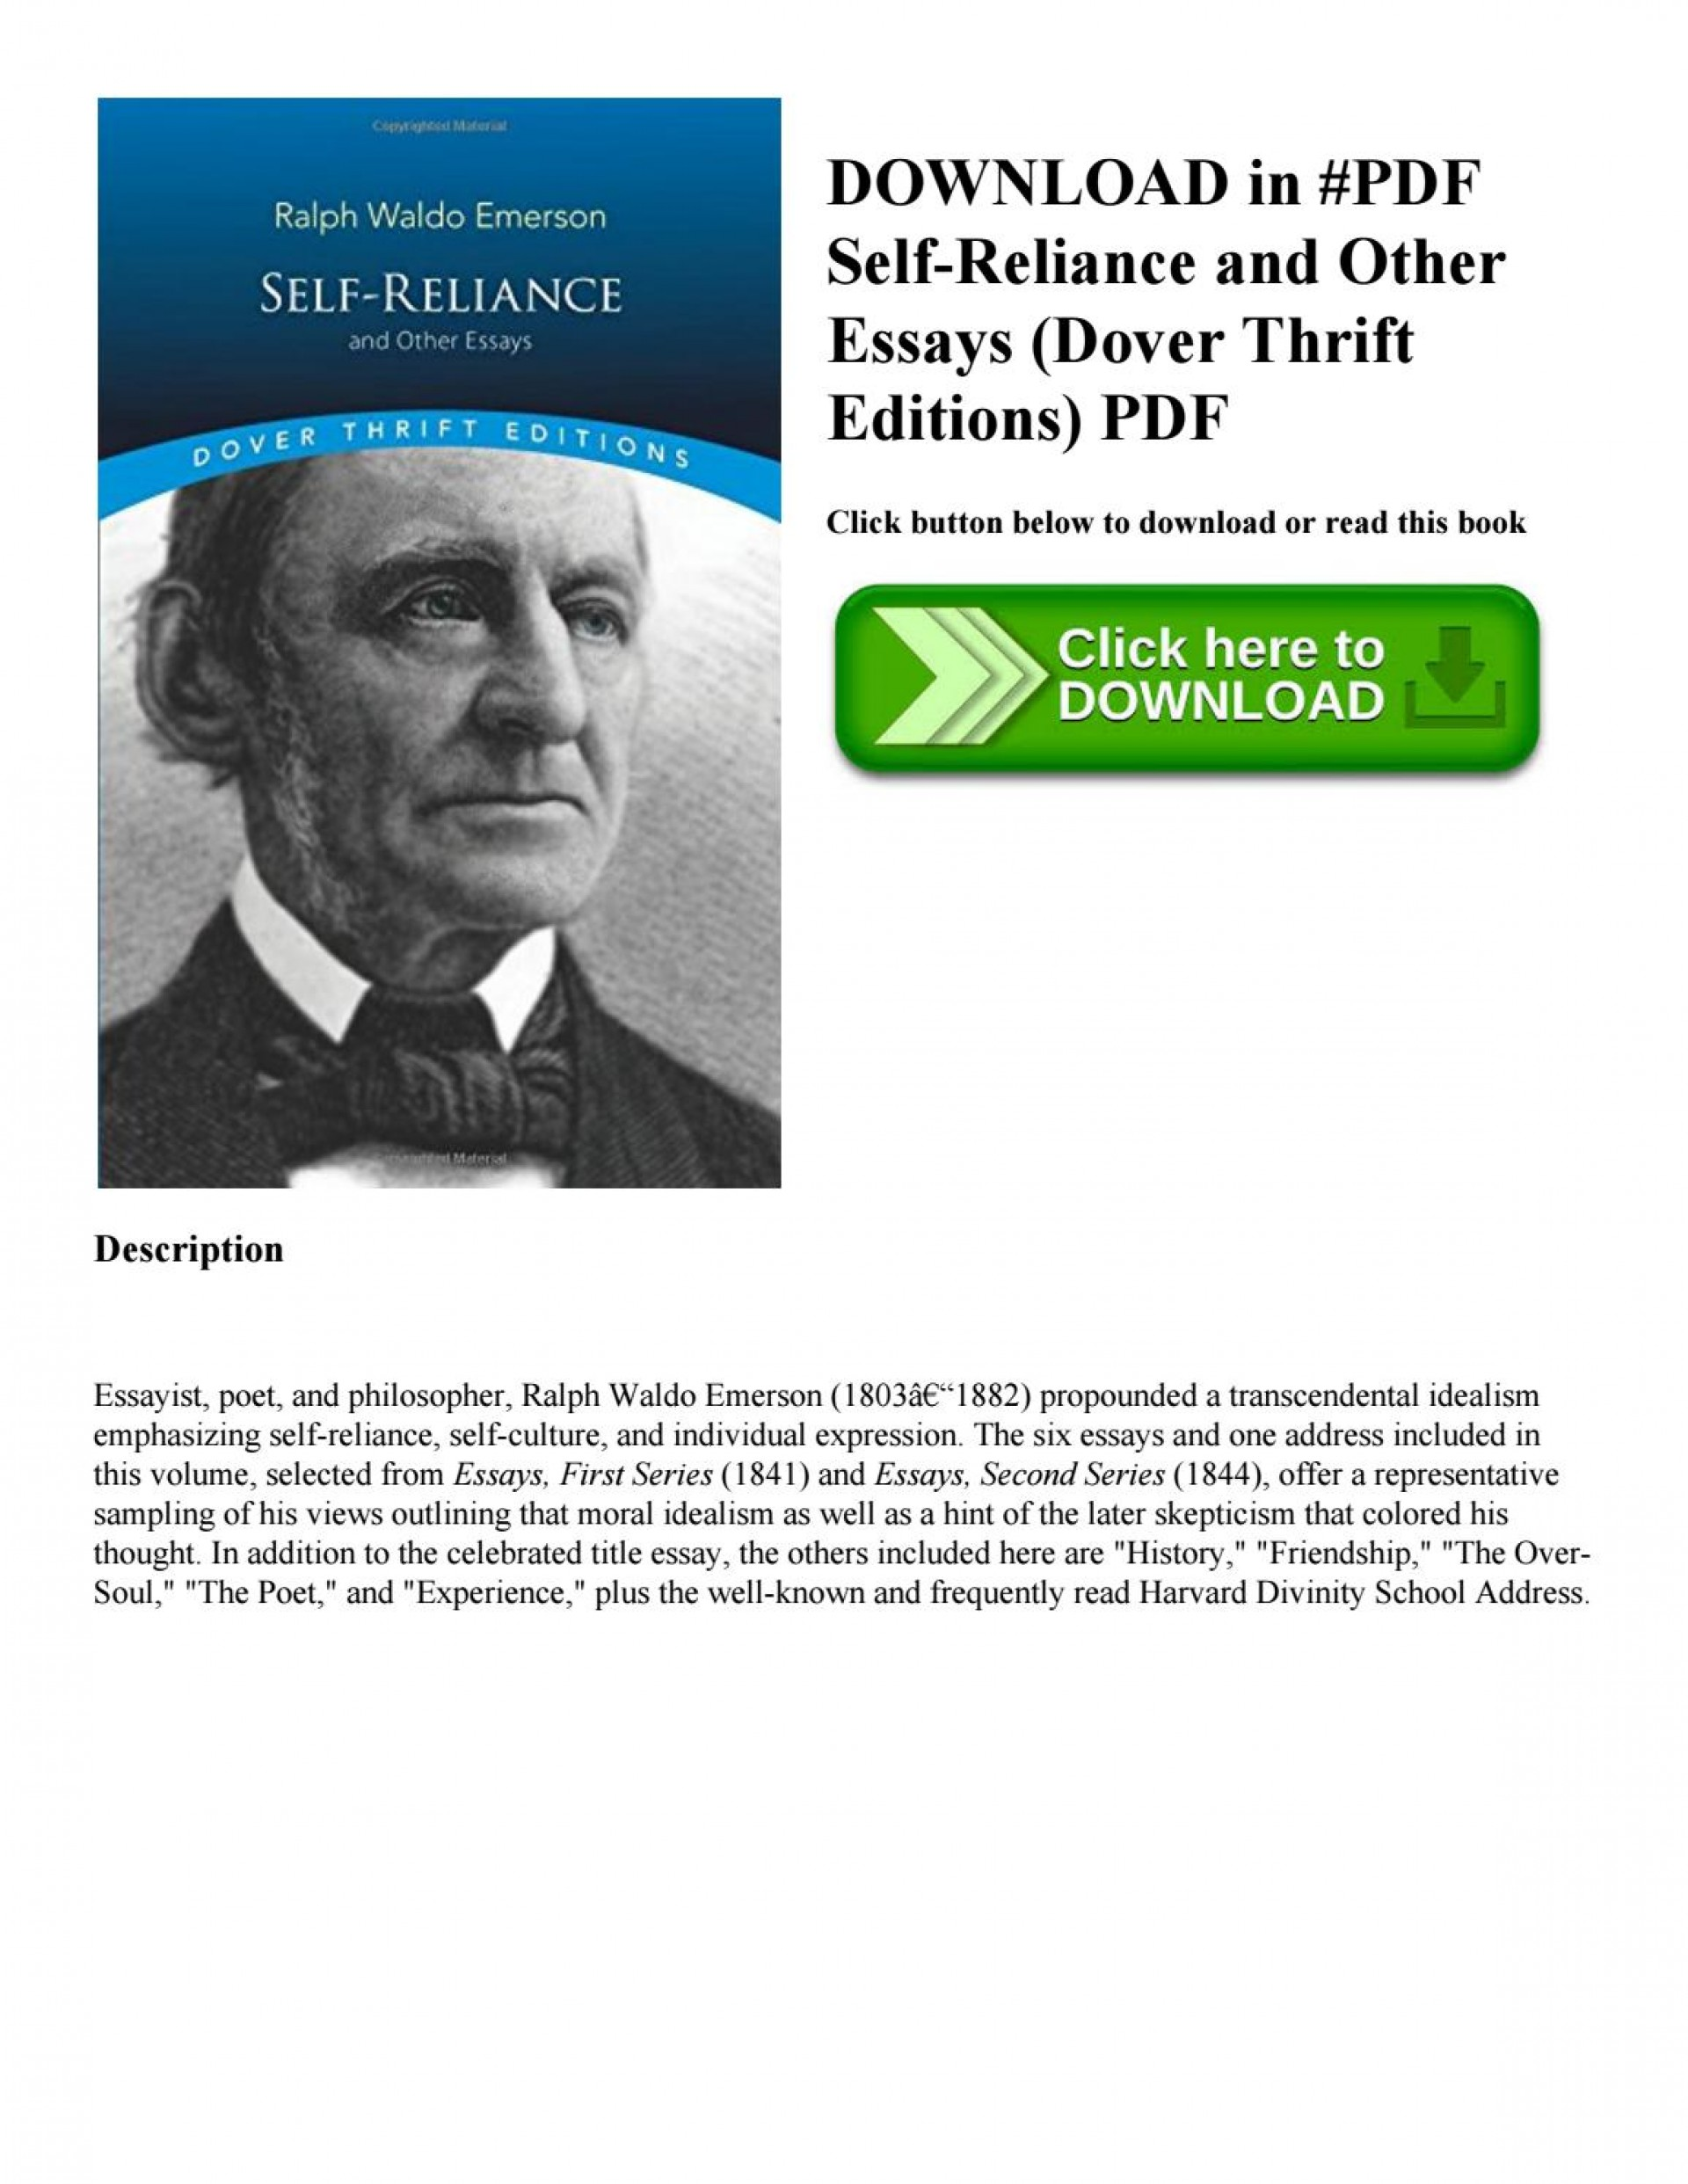 007 Page 1 Self Reliance And Other Essays Essay Formidable Ekşi Self-reliance (dover Thrift Editions) Pdf Epub 1920